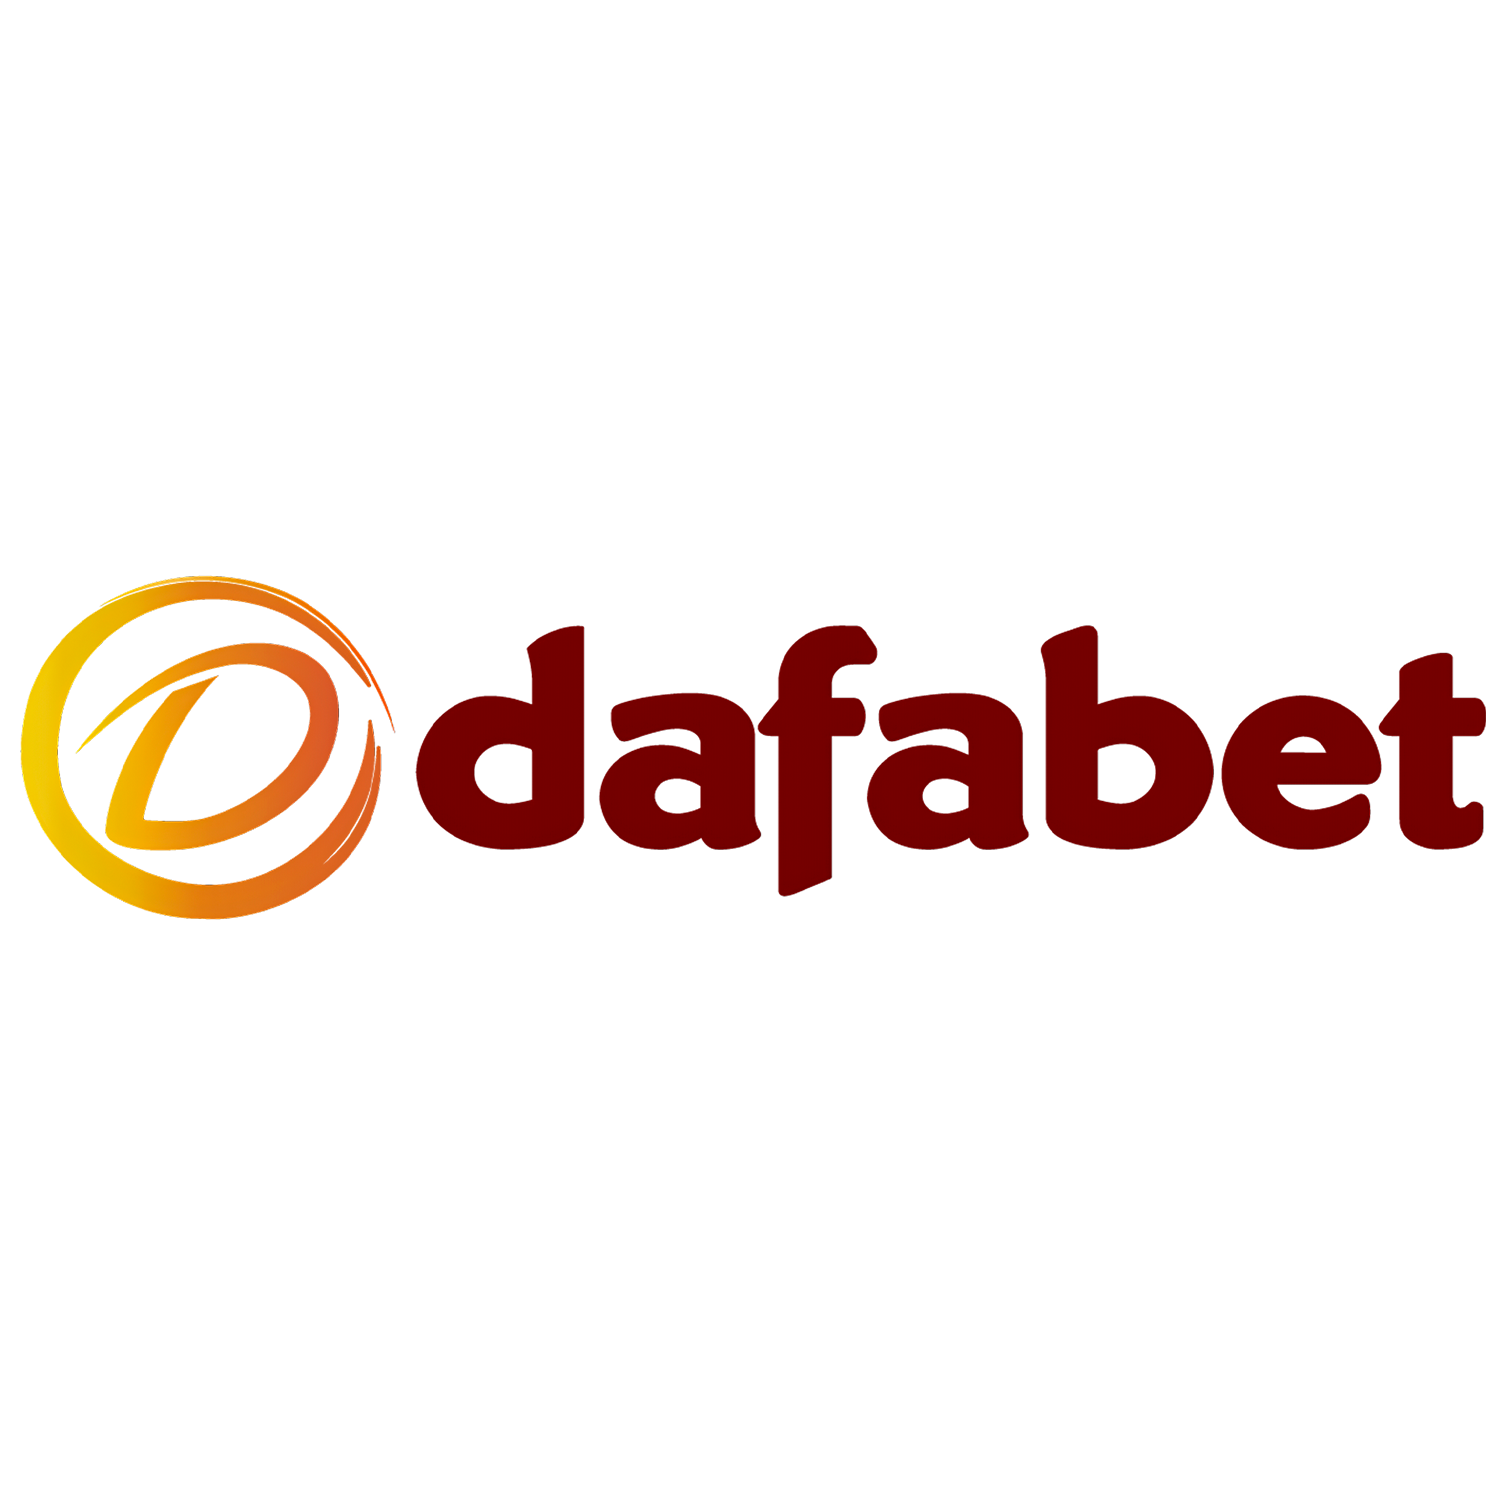 It's rather convenient online bettong platform for Indian pleyers to bet on cricket.